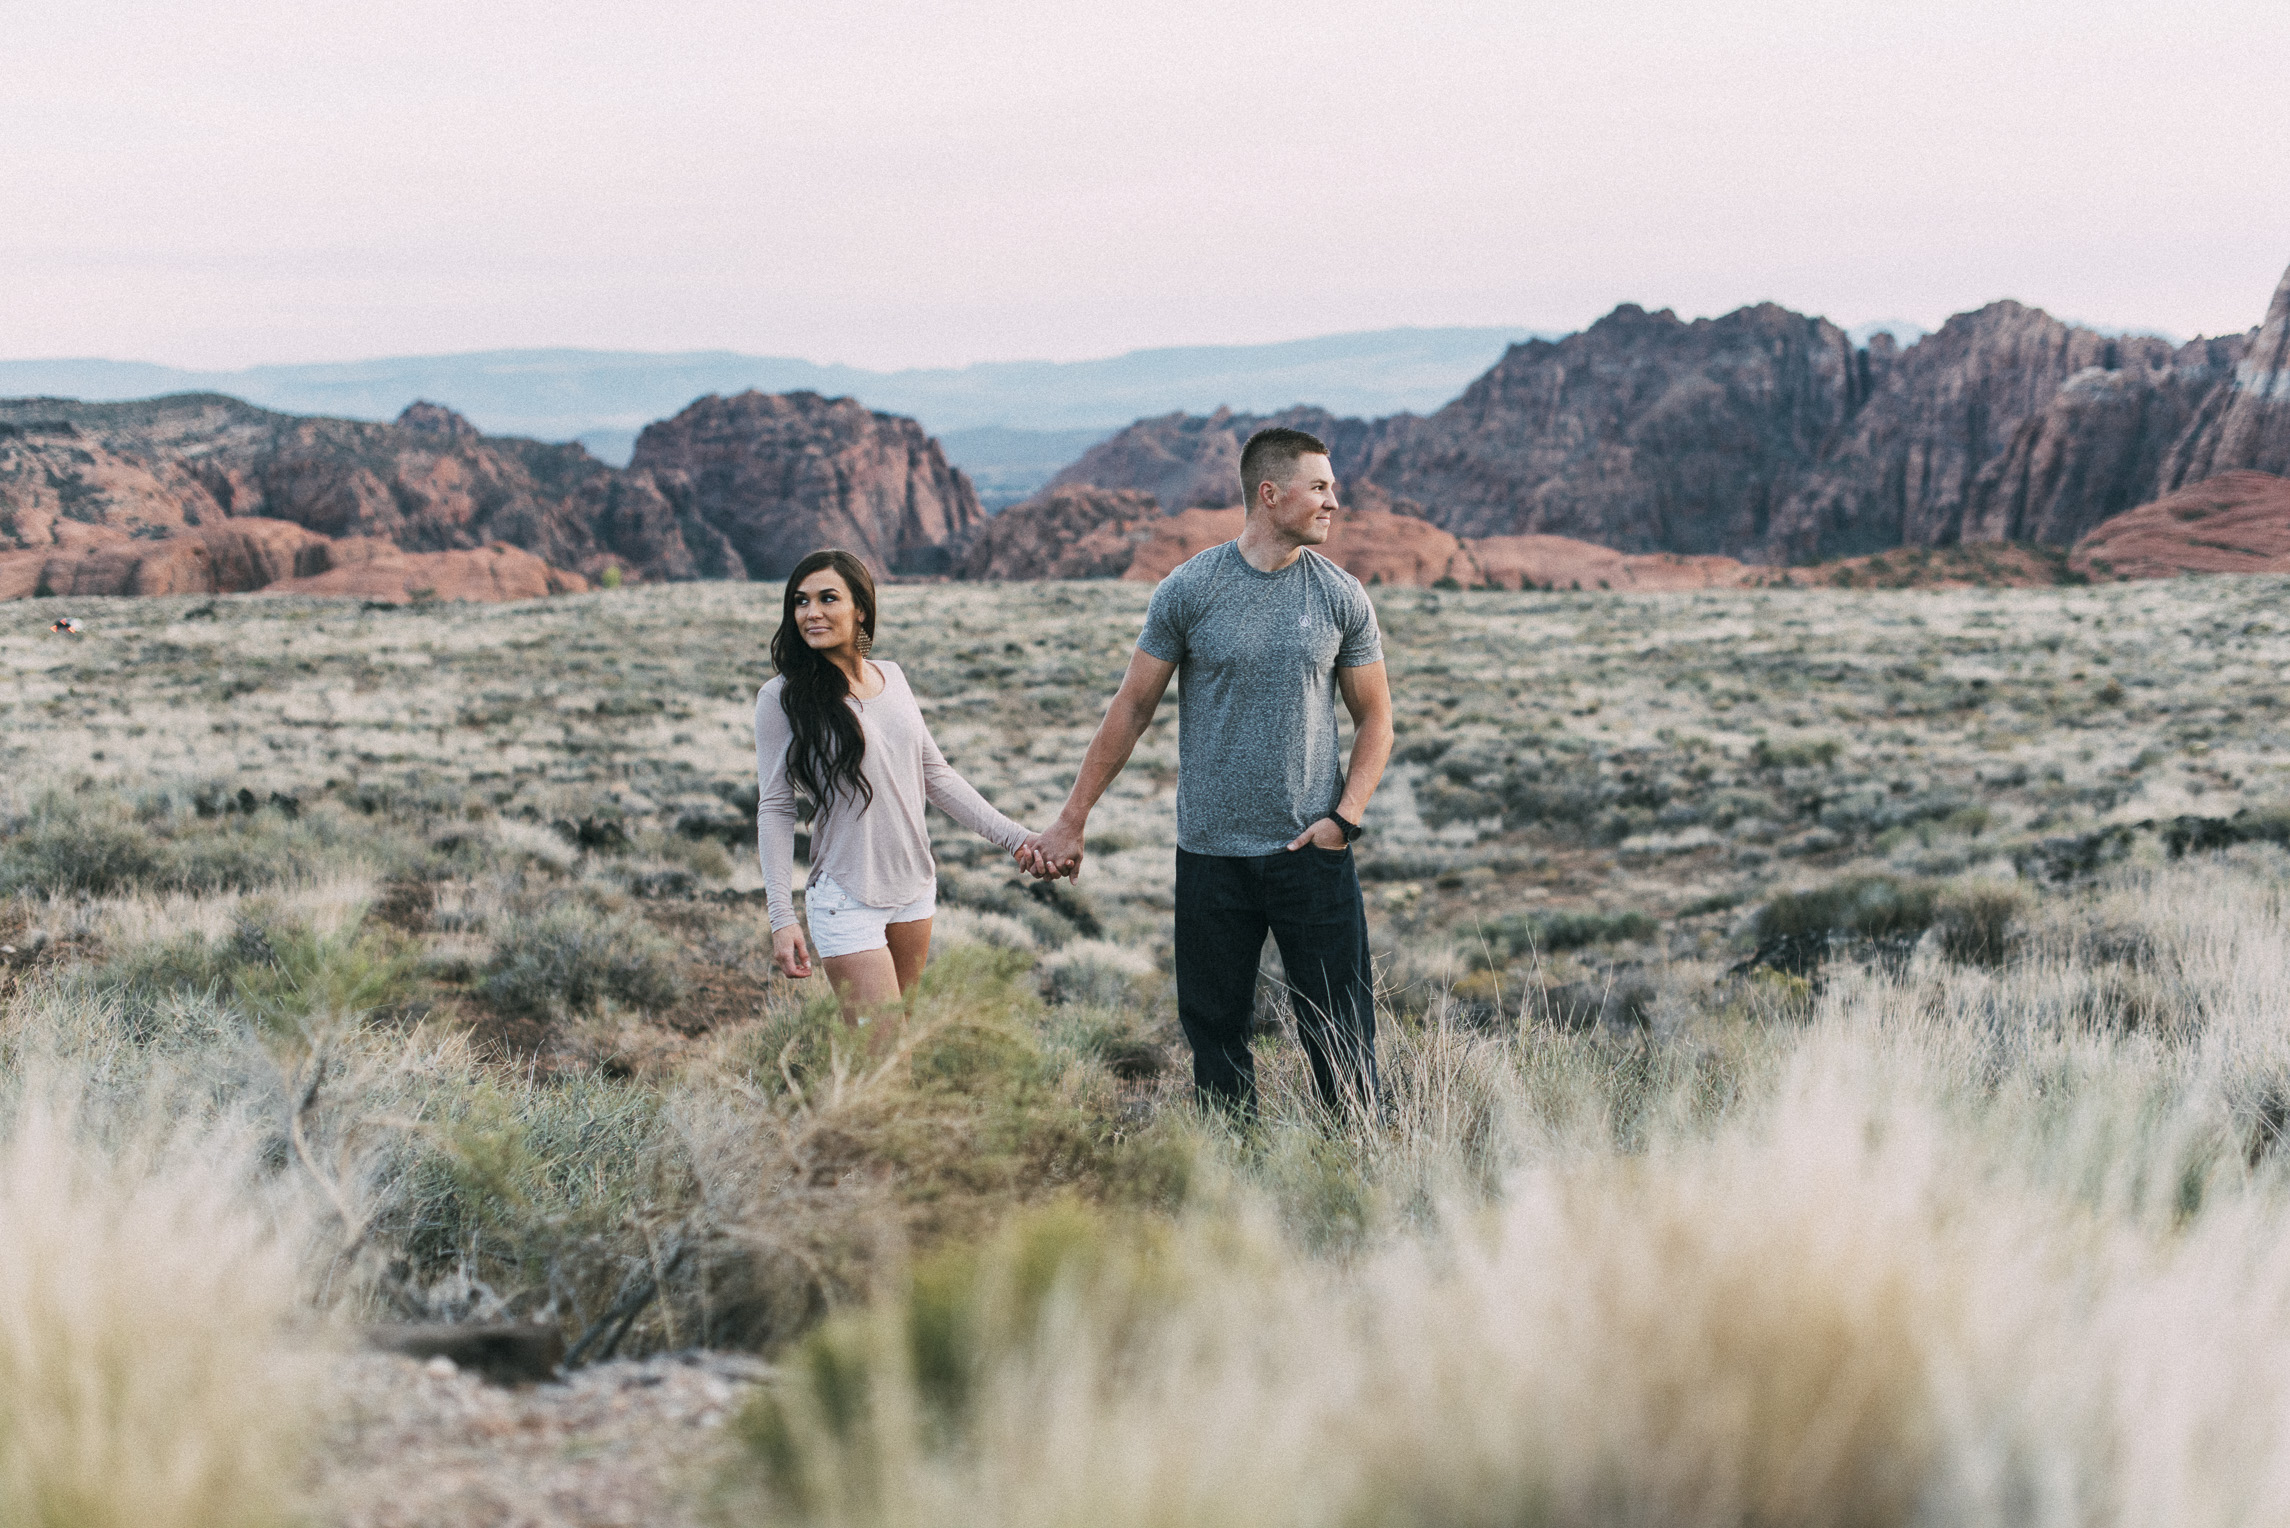 050416KELSEY & RUSTIN ENGAGEMENTS - ST. GEORGE LAS VEGAS PHOTOGRAPHER - DEBI RAE PHOTOGRAPHY-97.jpg